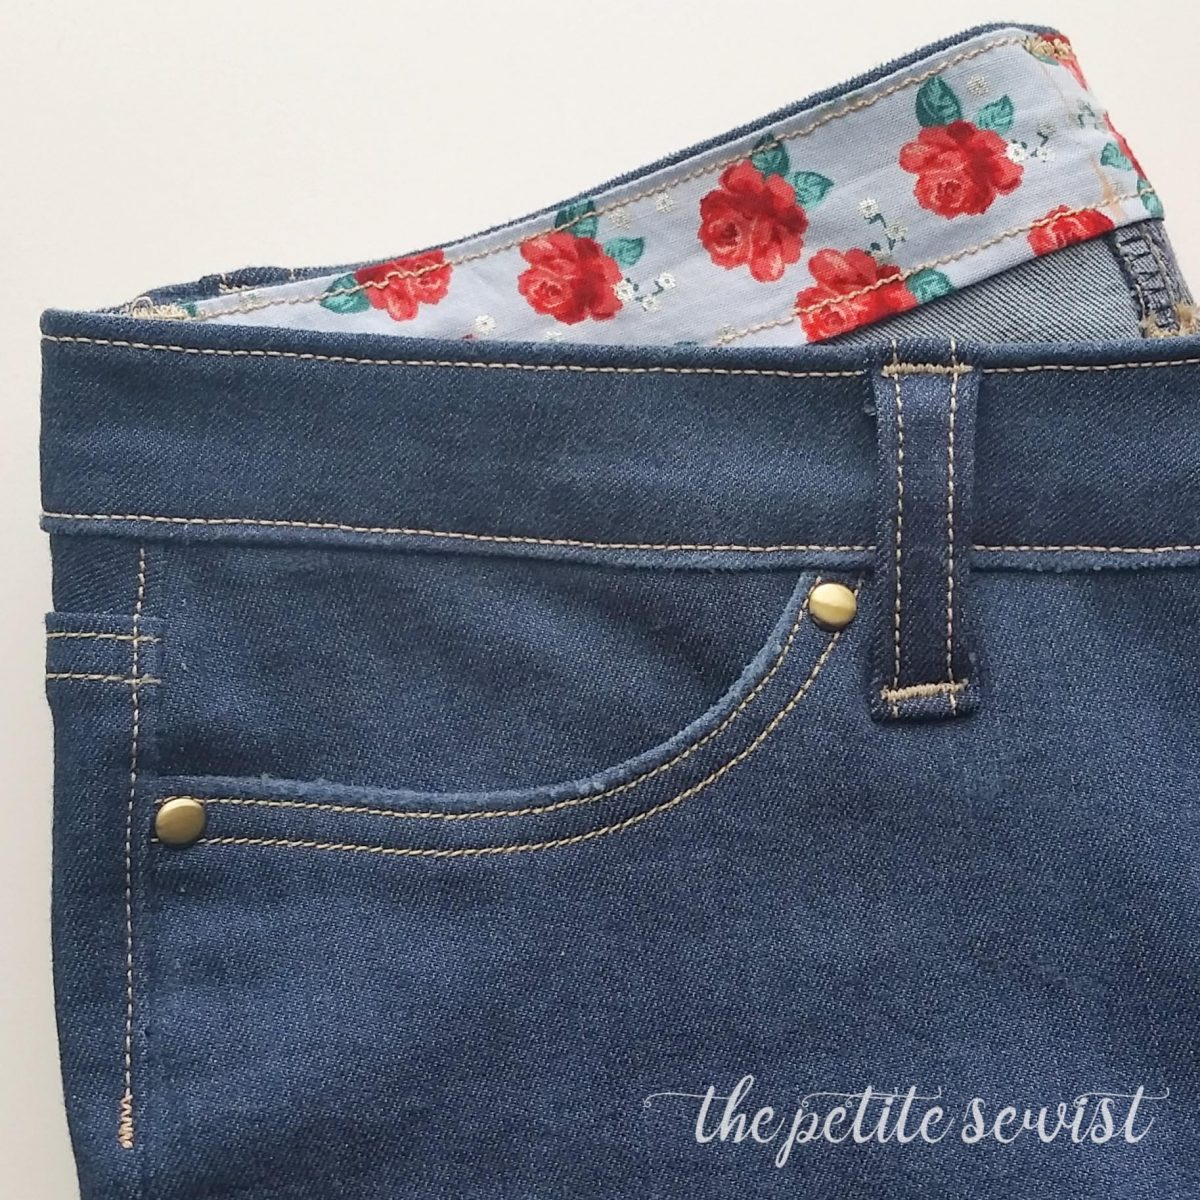 7 Tips for Sewing Jeans that everyone should know, by the petitesewist.com, tips to help you on your jeans sewing journey